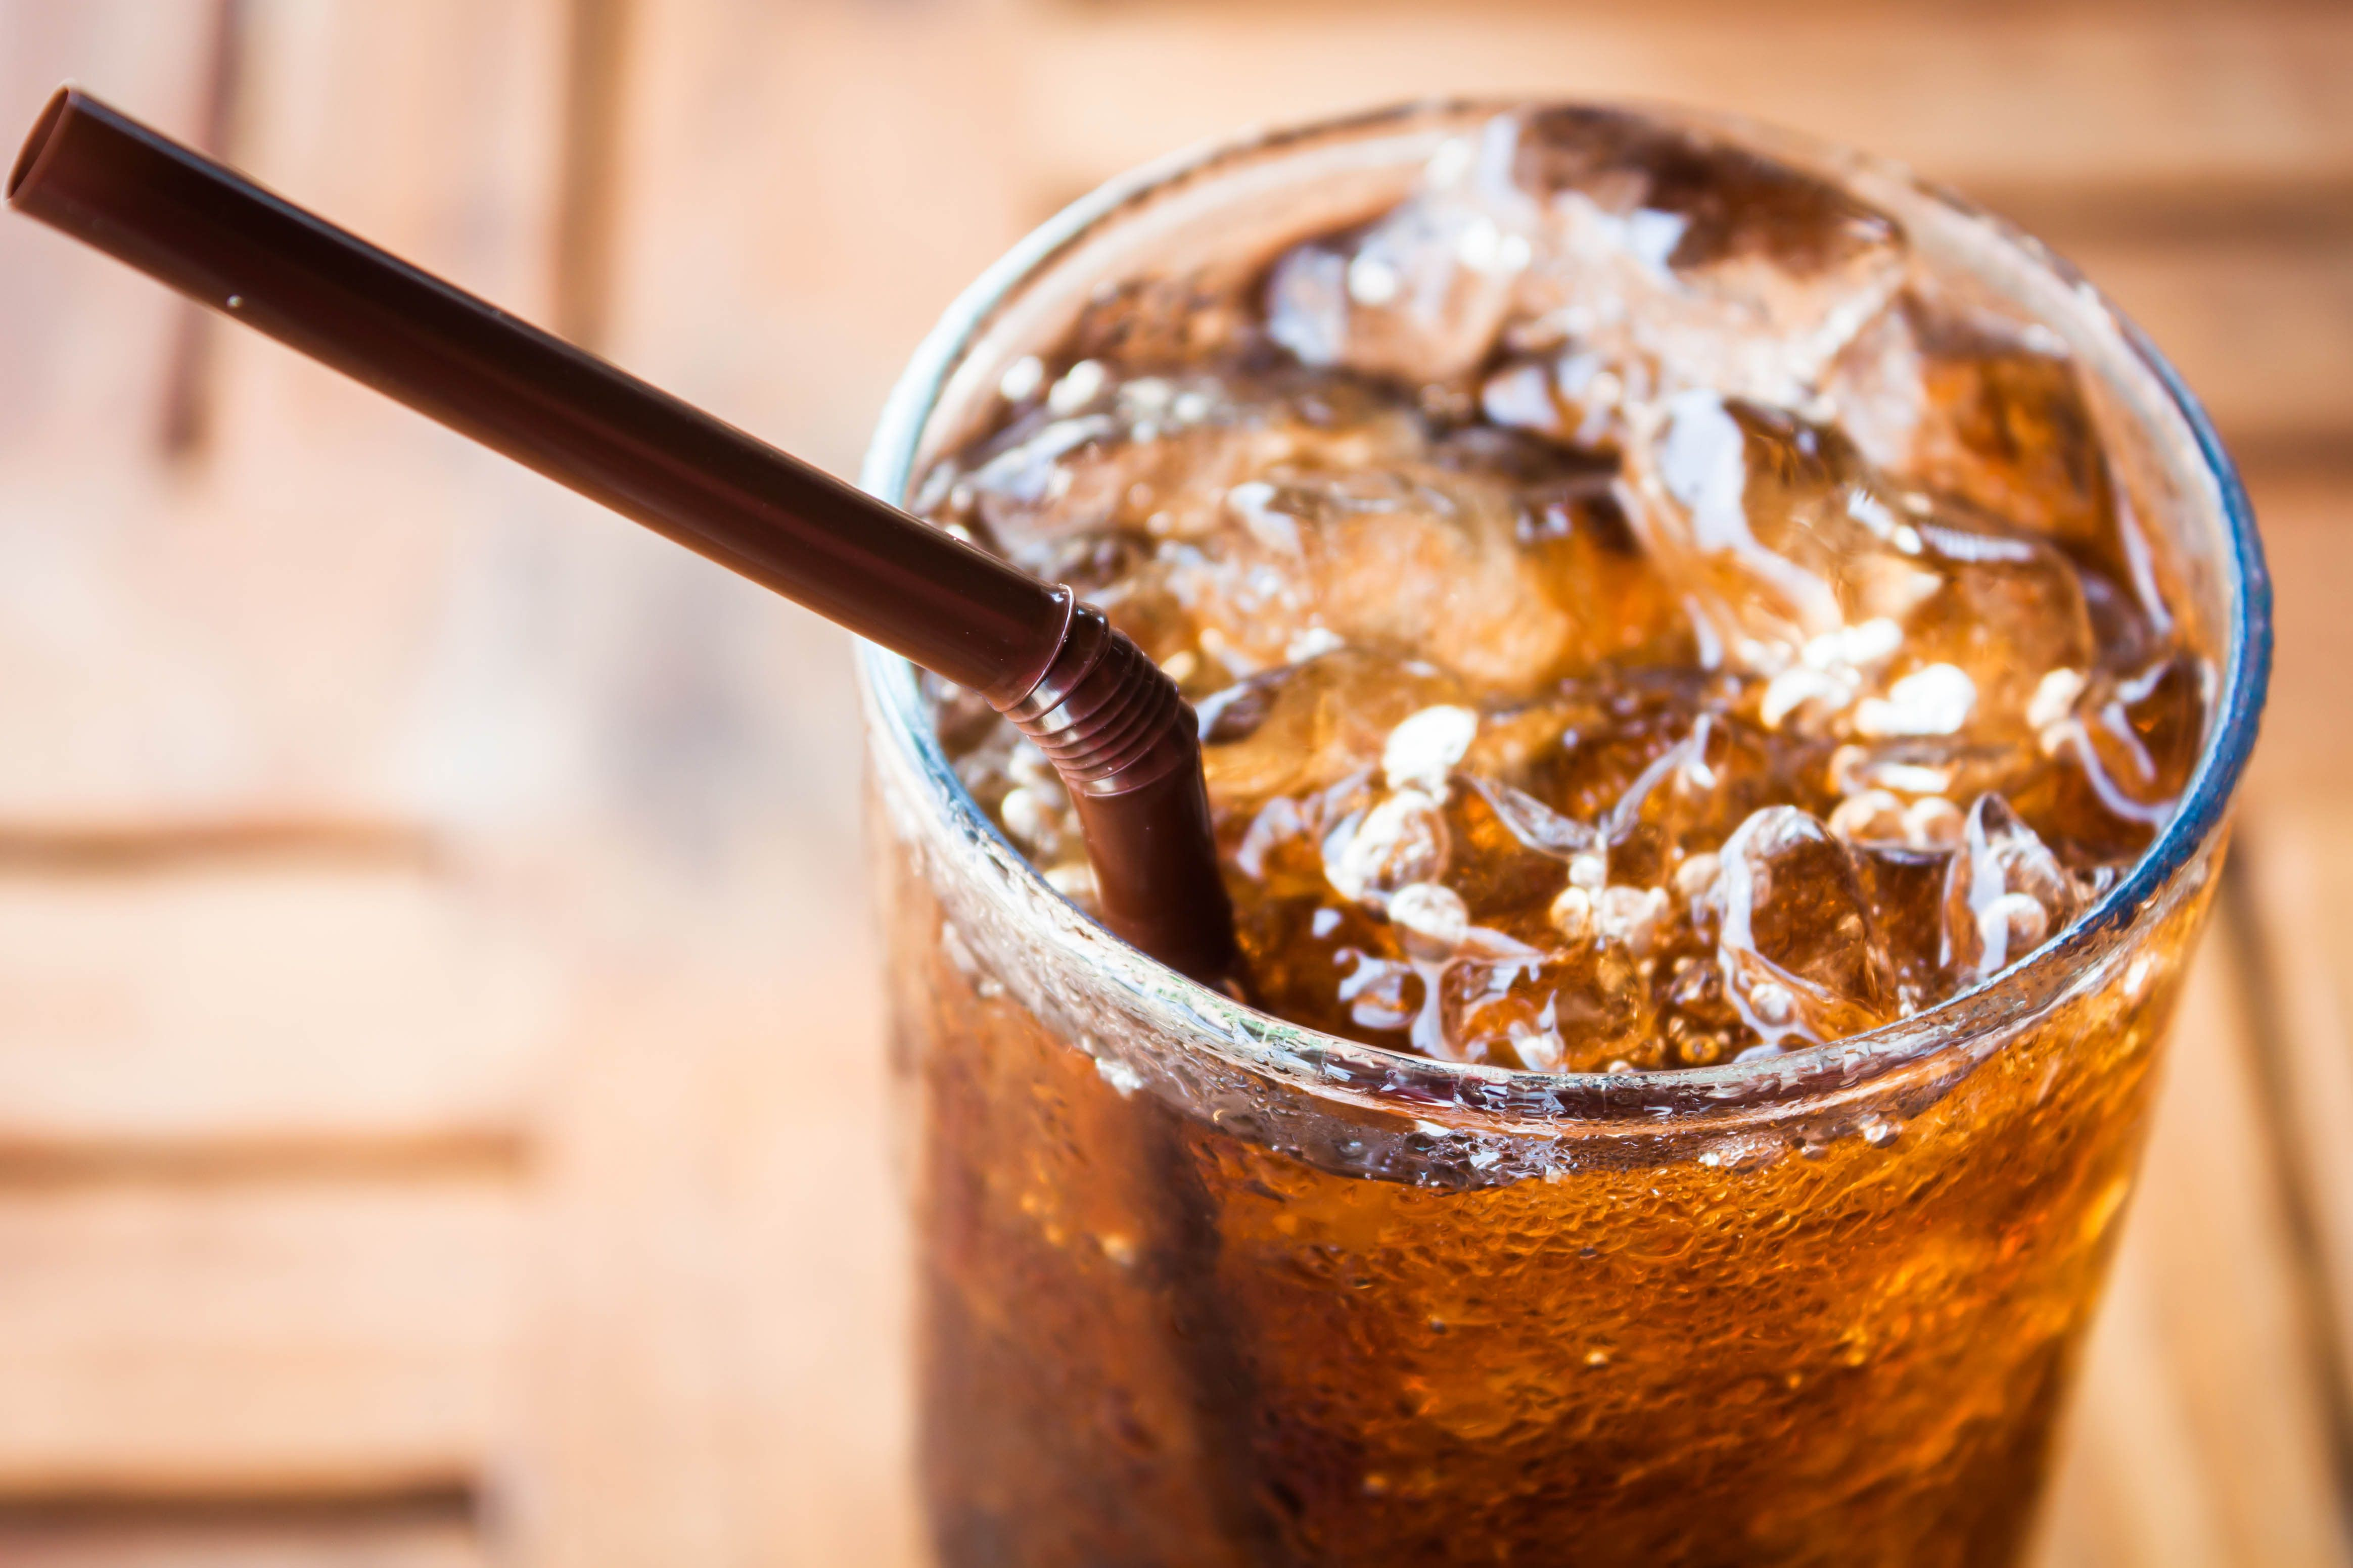 Two Fizzy Drinks Per Day Could Double Risk Of Type 2 Diabetes, Researchers